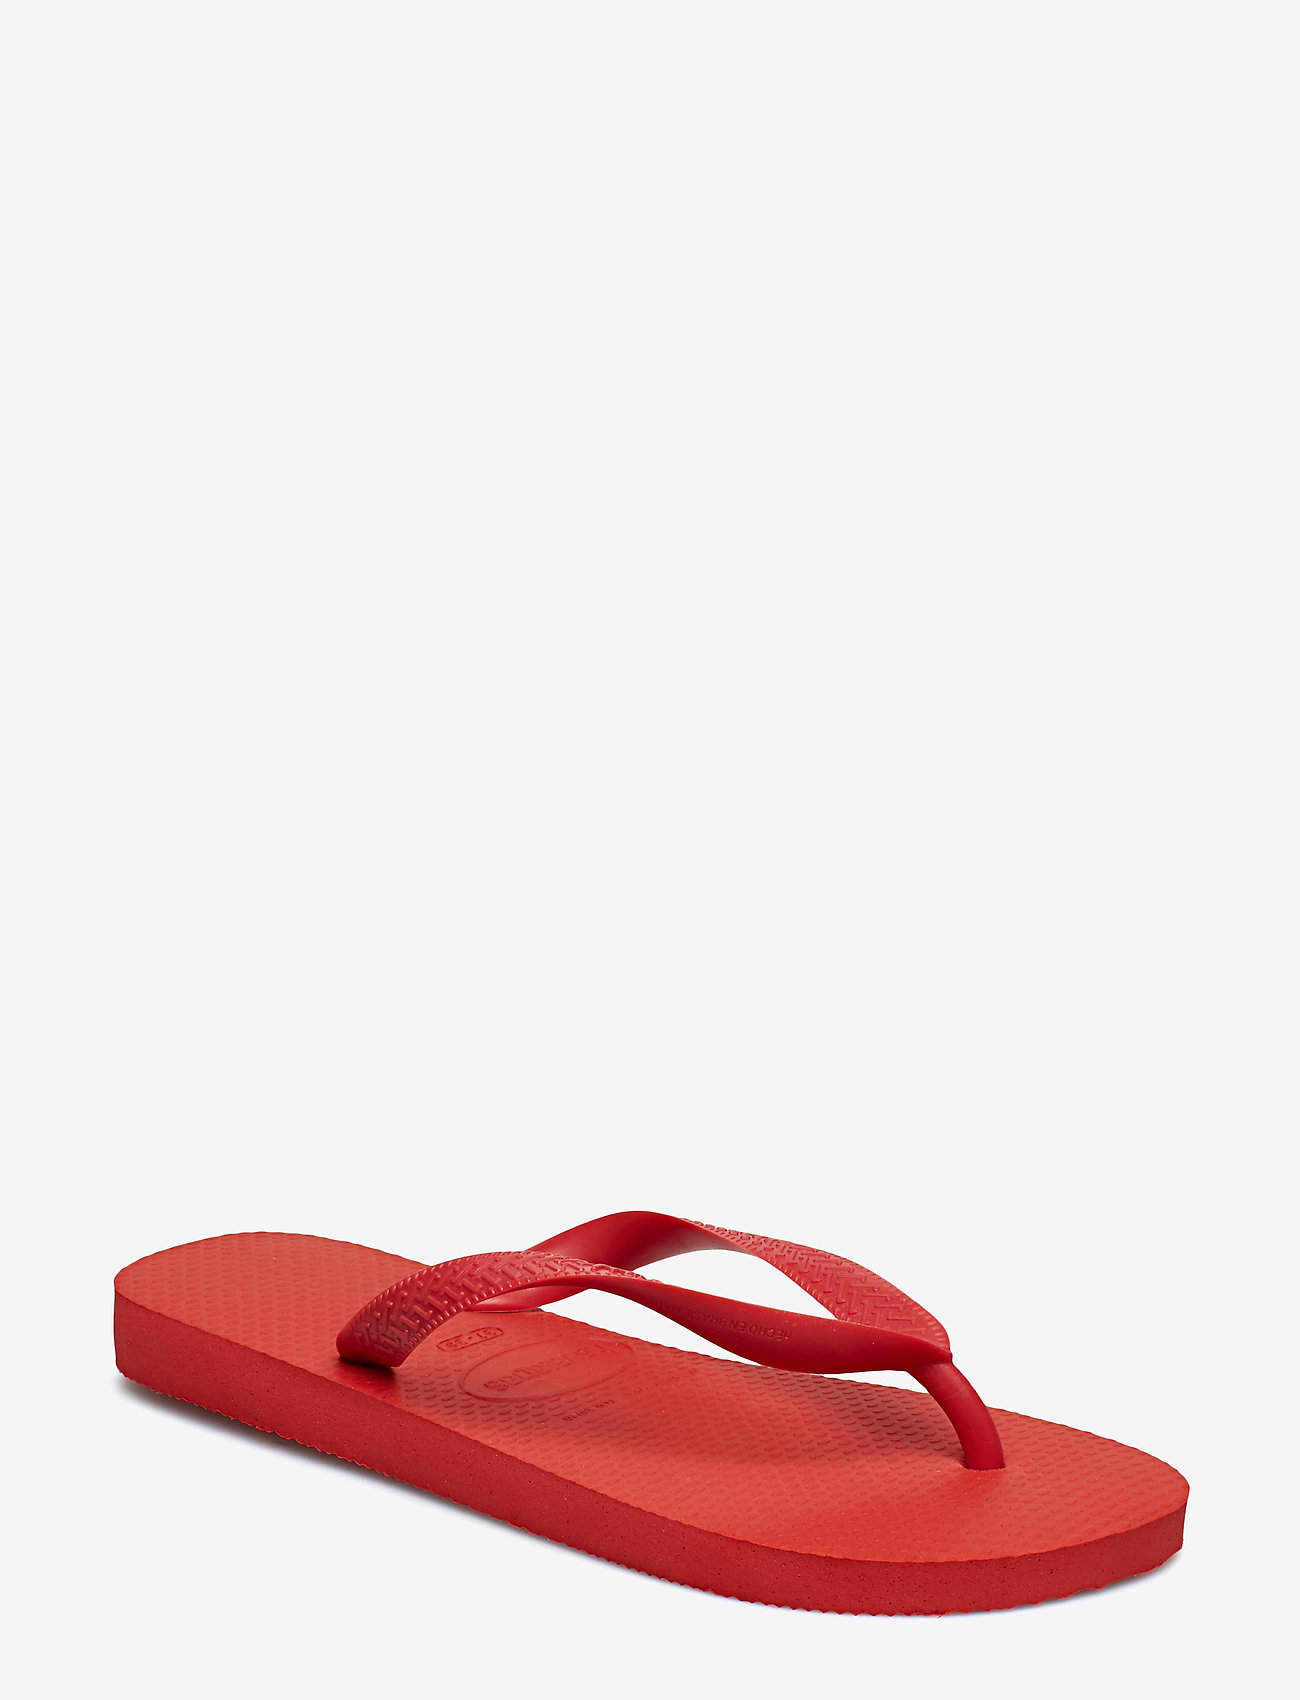 Havaianas - Hav Top - japonki - ruby red 2090